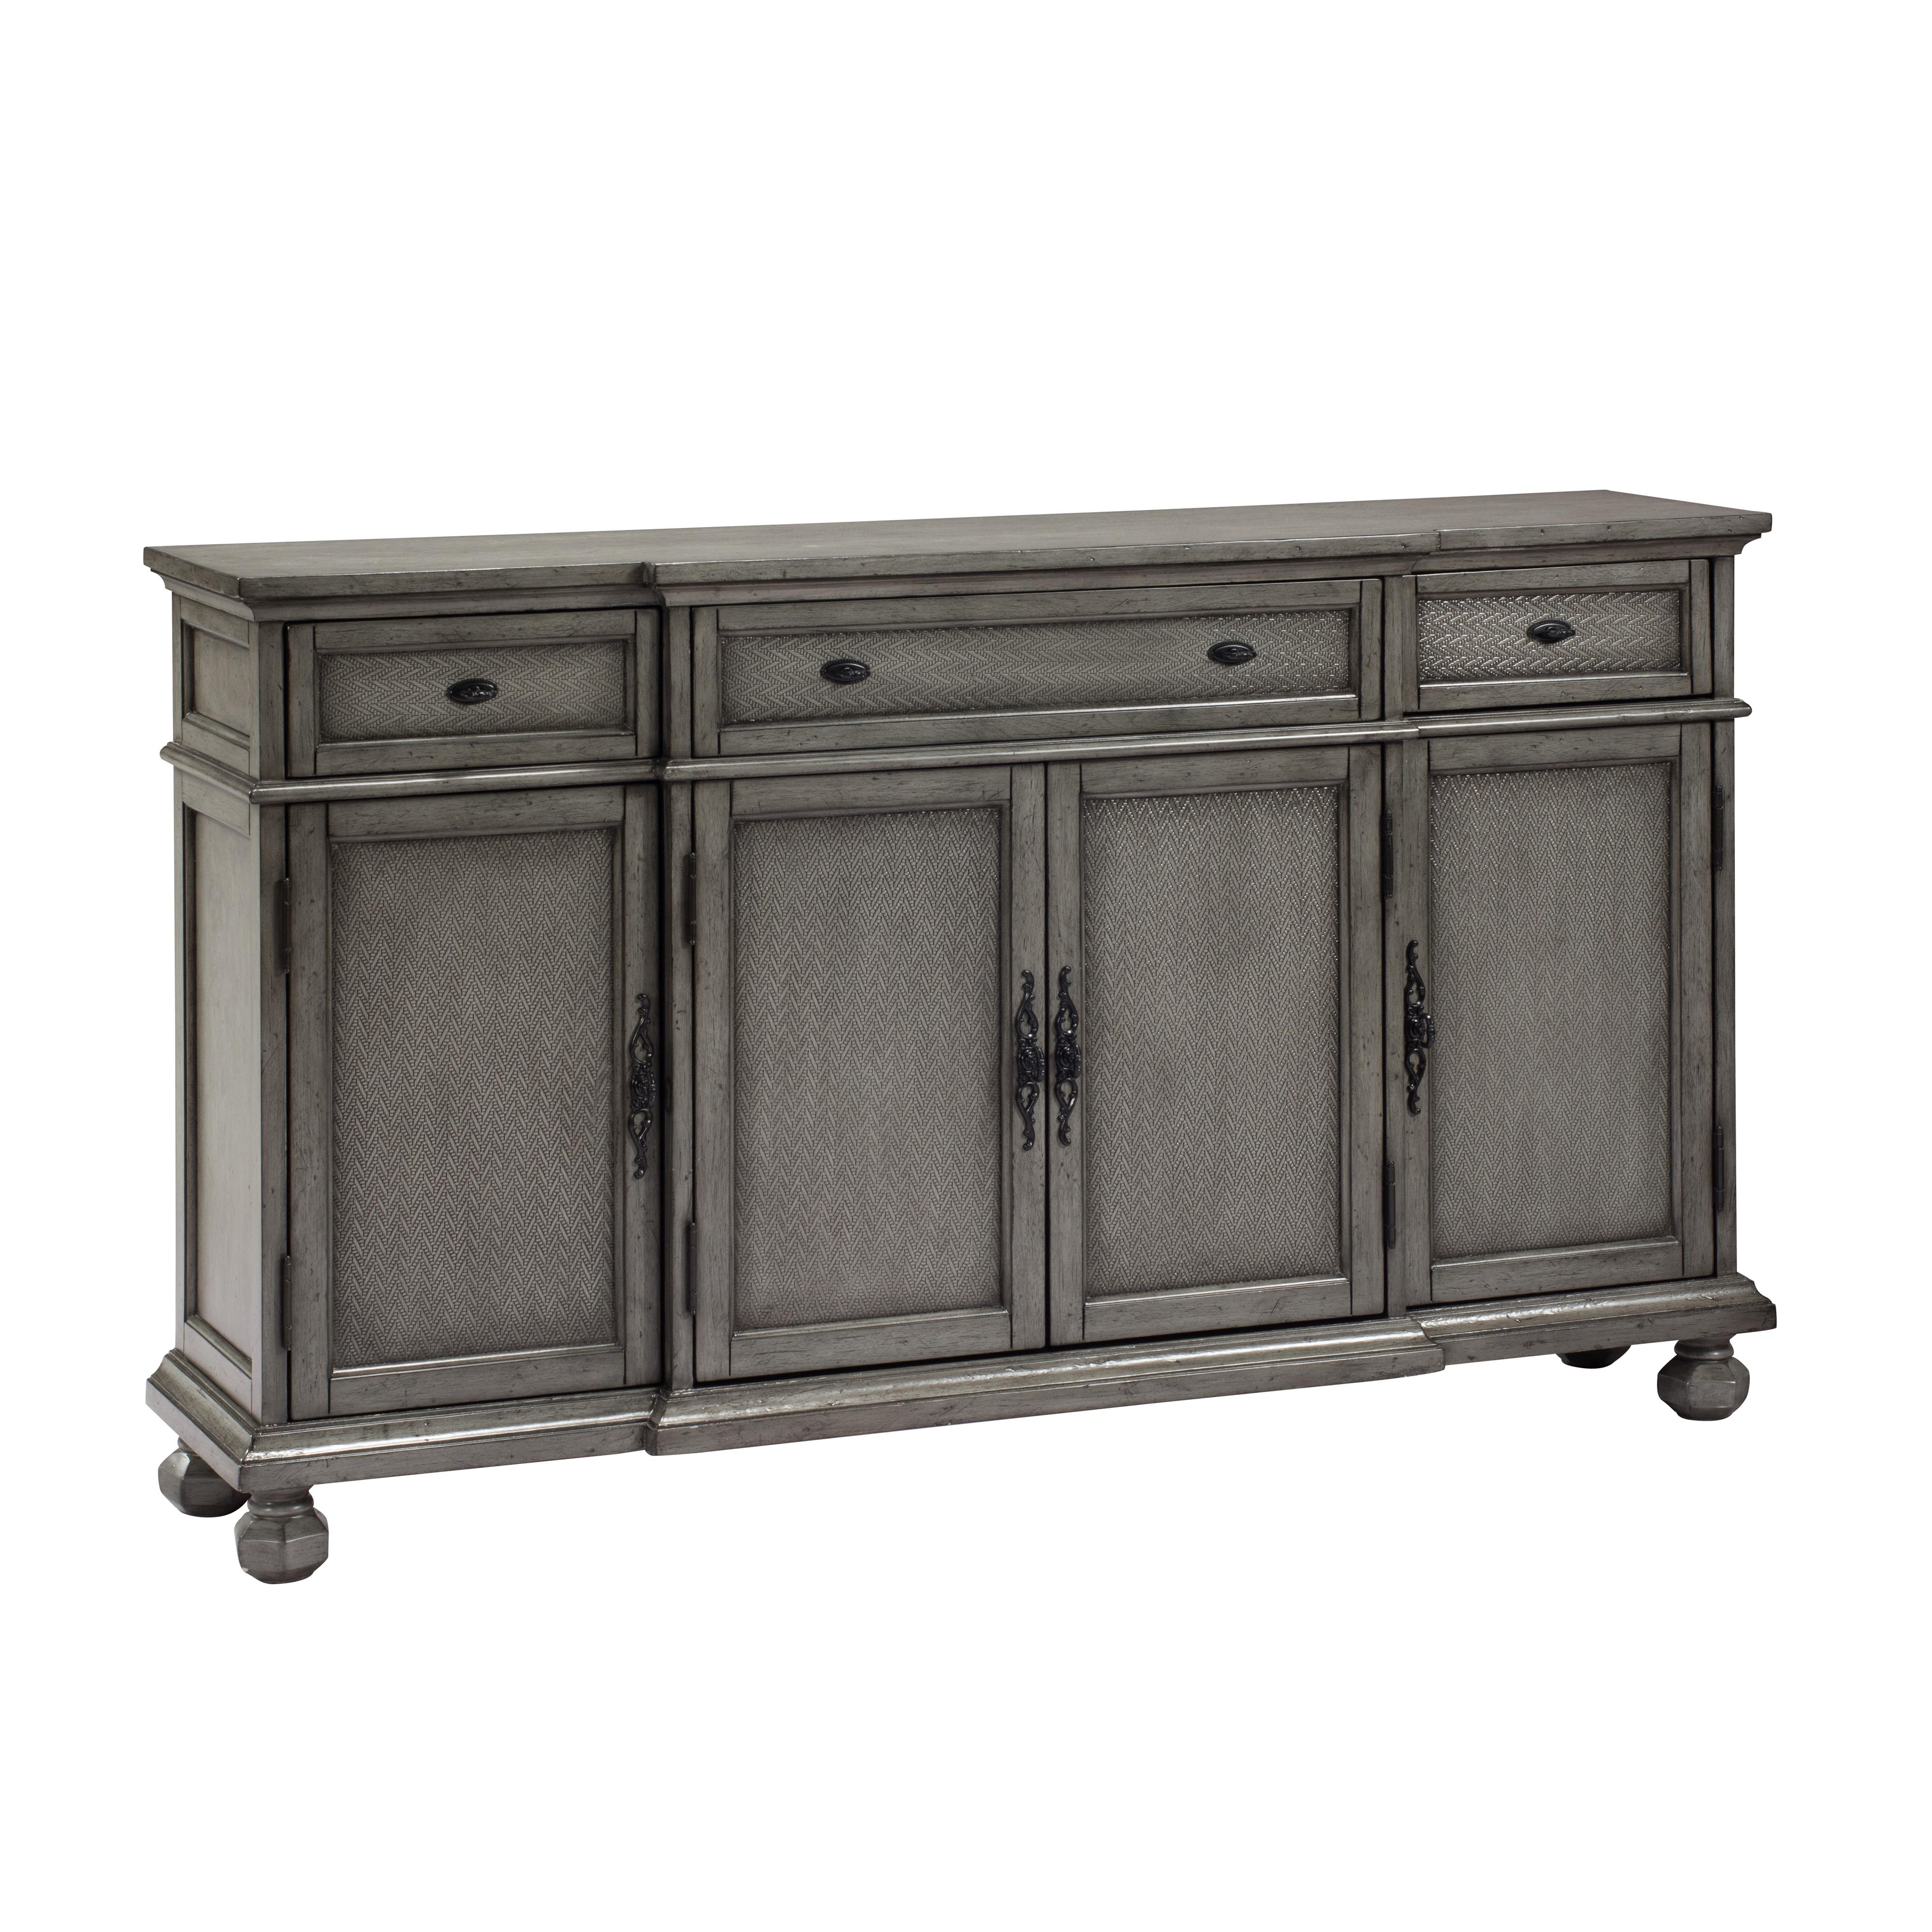 C2C Accents Three Drawer Four Door Credenza by C2C at Walker's Furniture